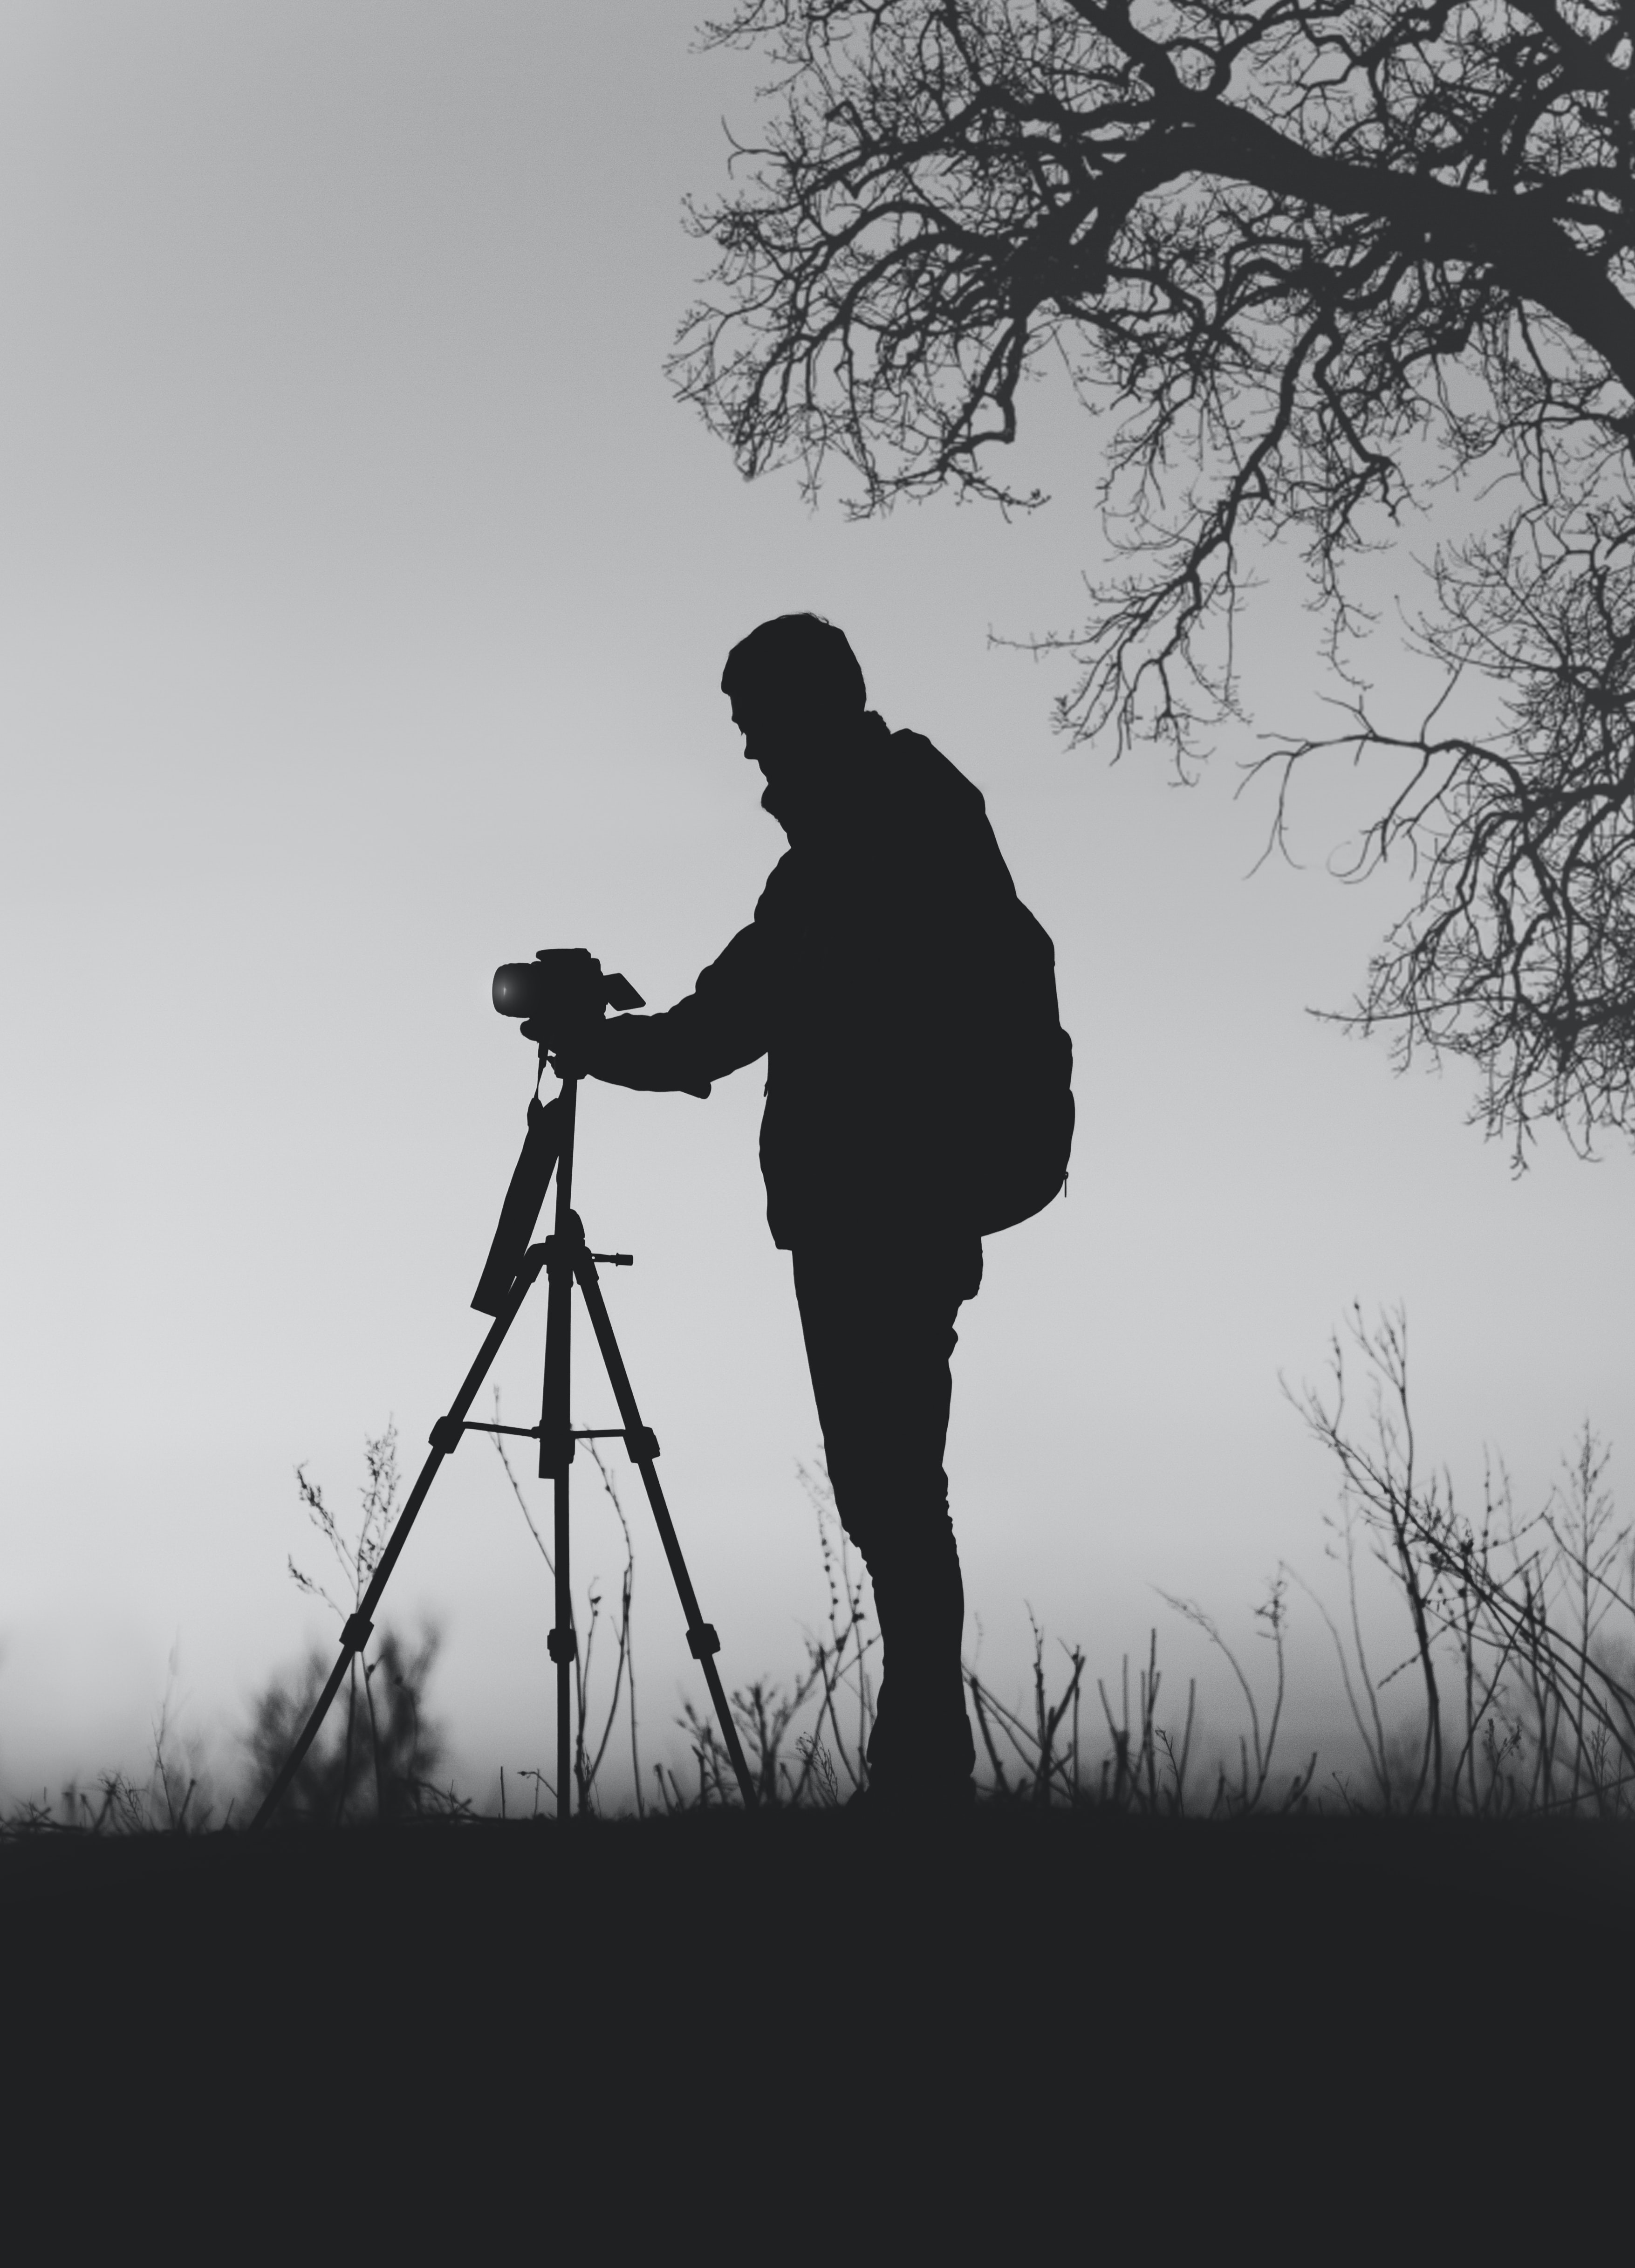 silhouette photo of man in front of DSLR camera with tripod under leafless tree